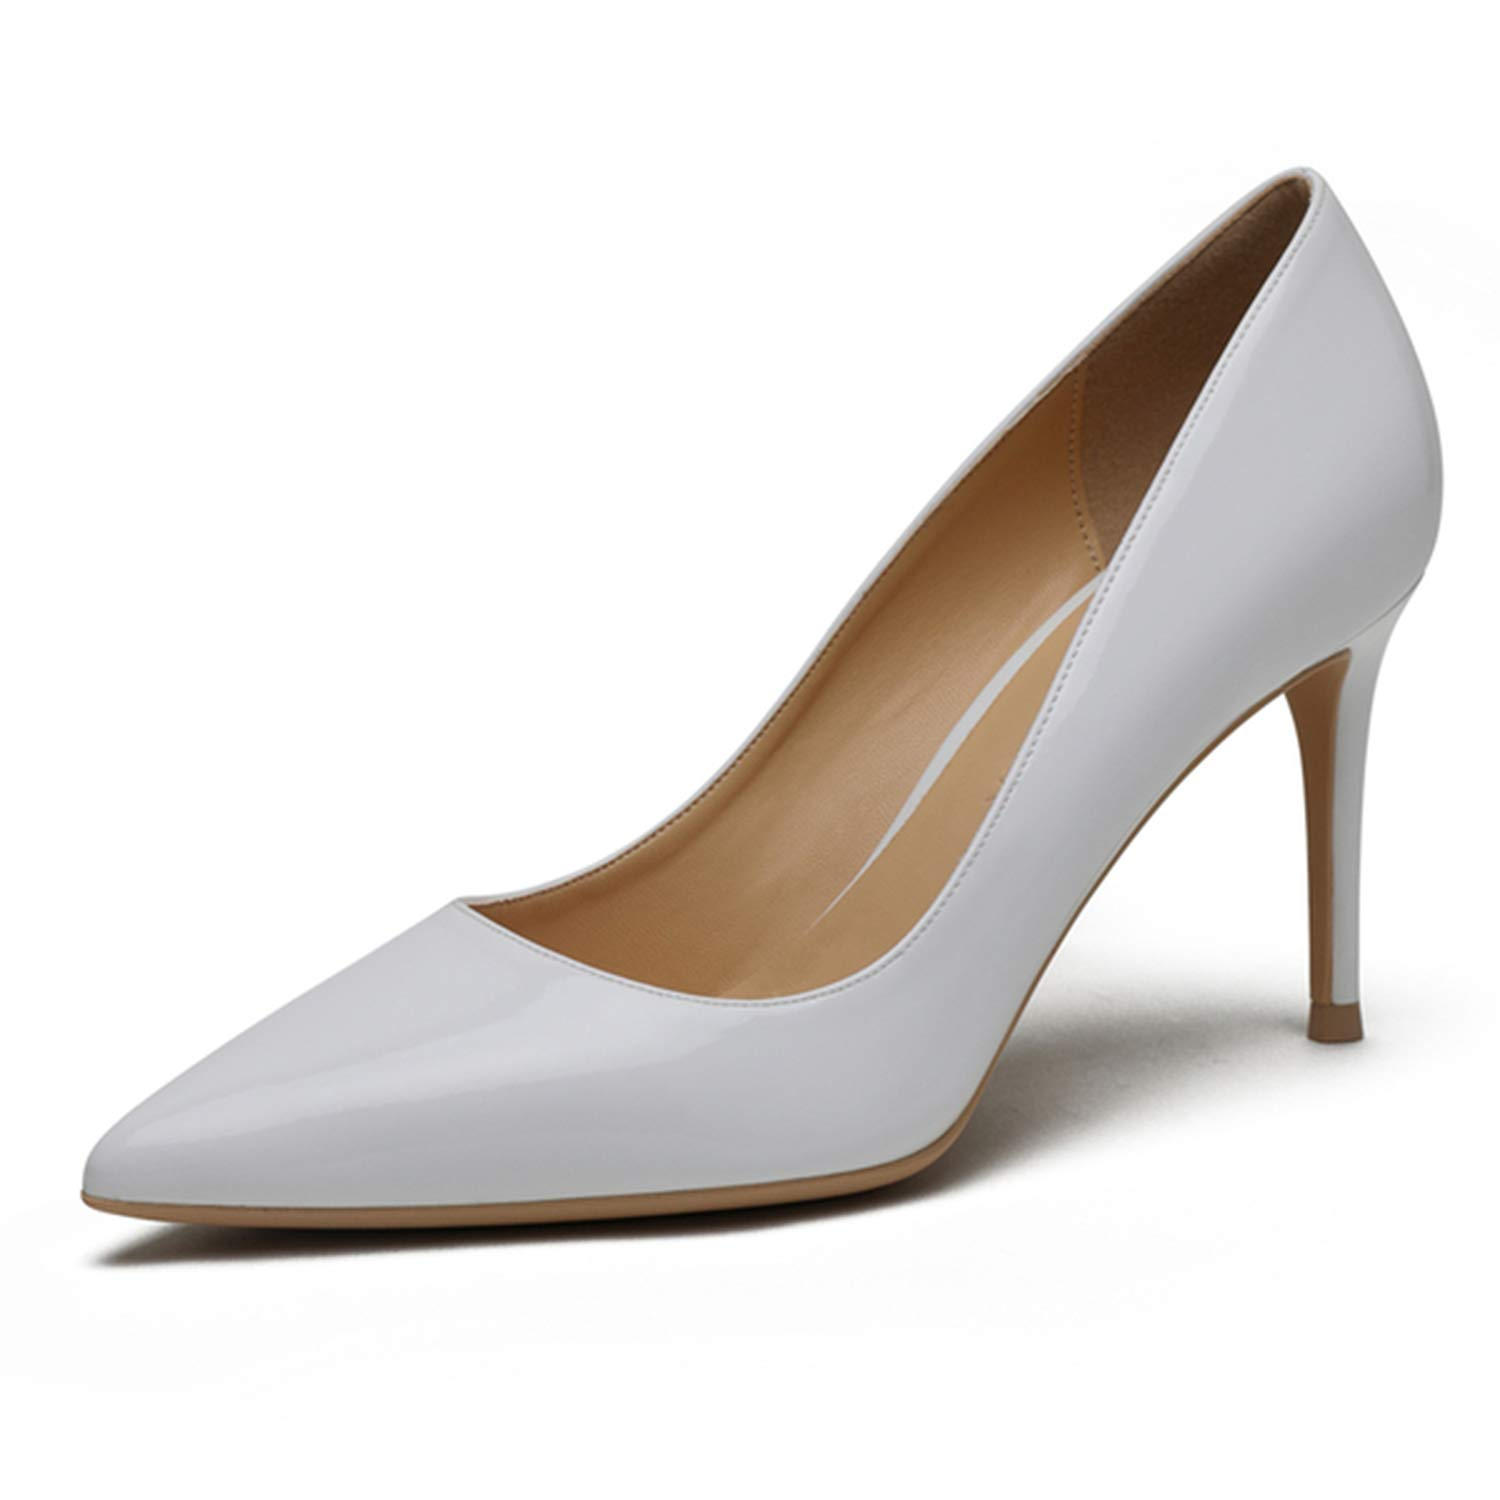 White Wedding shoes Women Pumps Patent Leather8Cm Thin Heel shoes for Women,K-318